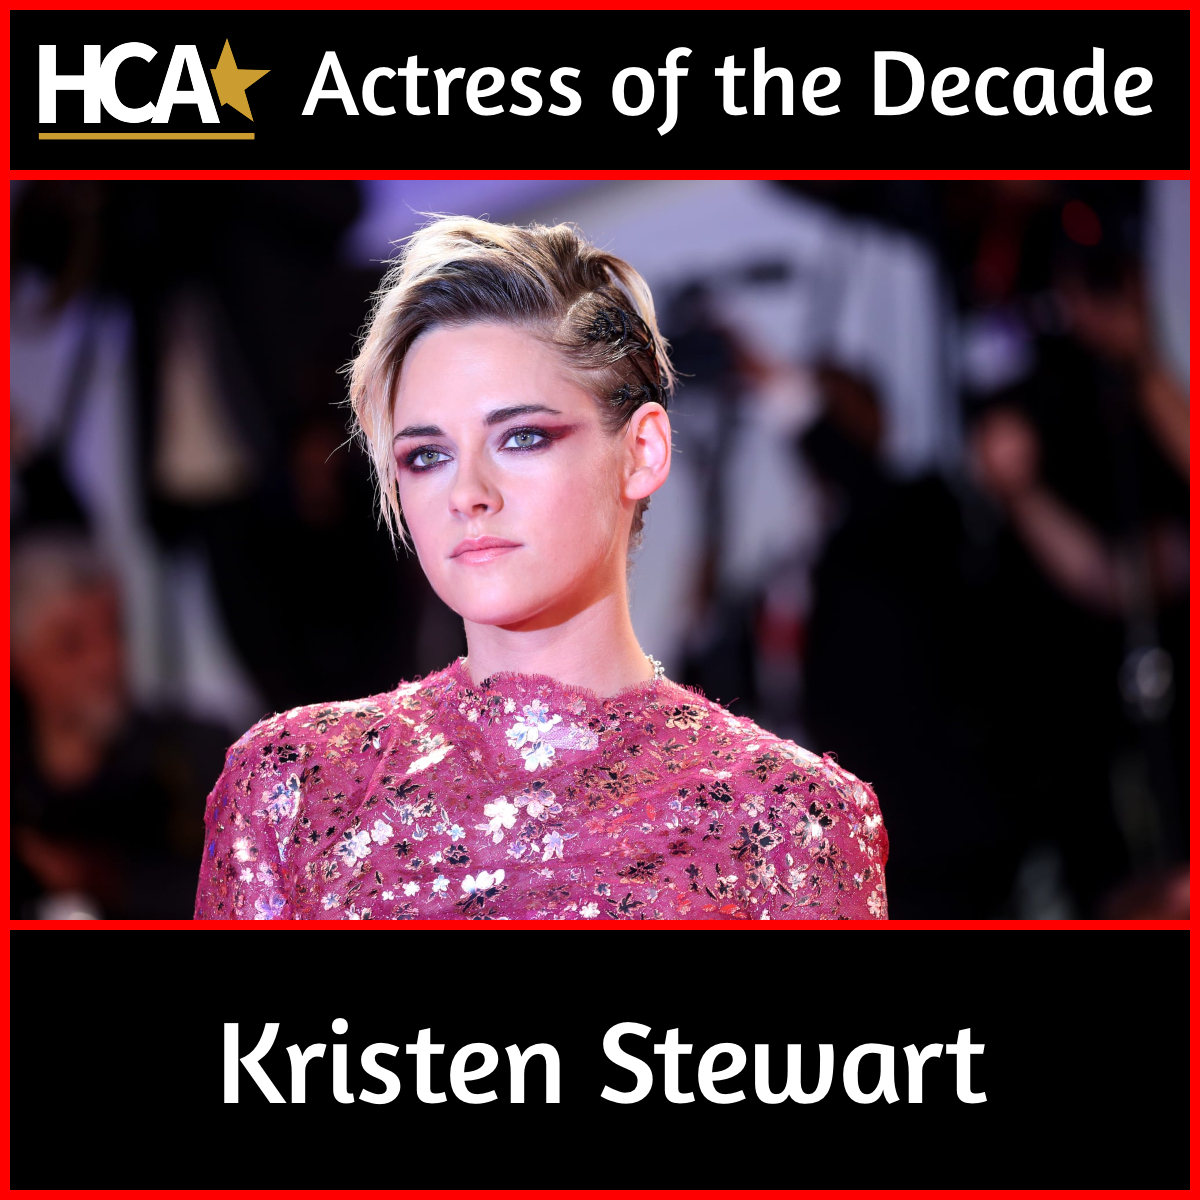 We at the HCA are proud to announce that Kristen Stewart will receive the Actress of the Decade Award at our ceremony on January 9, 2020. Stewart's impressive filmography includes Seberg, Personal Shopper, Clouds of Sils Maria, The Runaways, and Charlie's Angels.  #KristenStewart https://t.co/OYpjKDQD2d